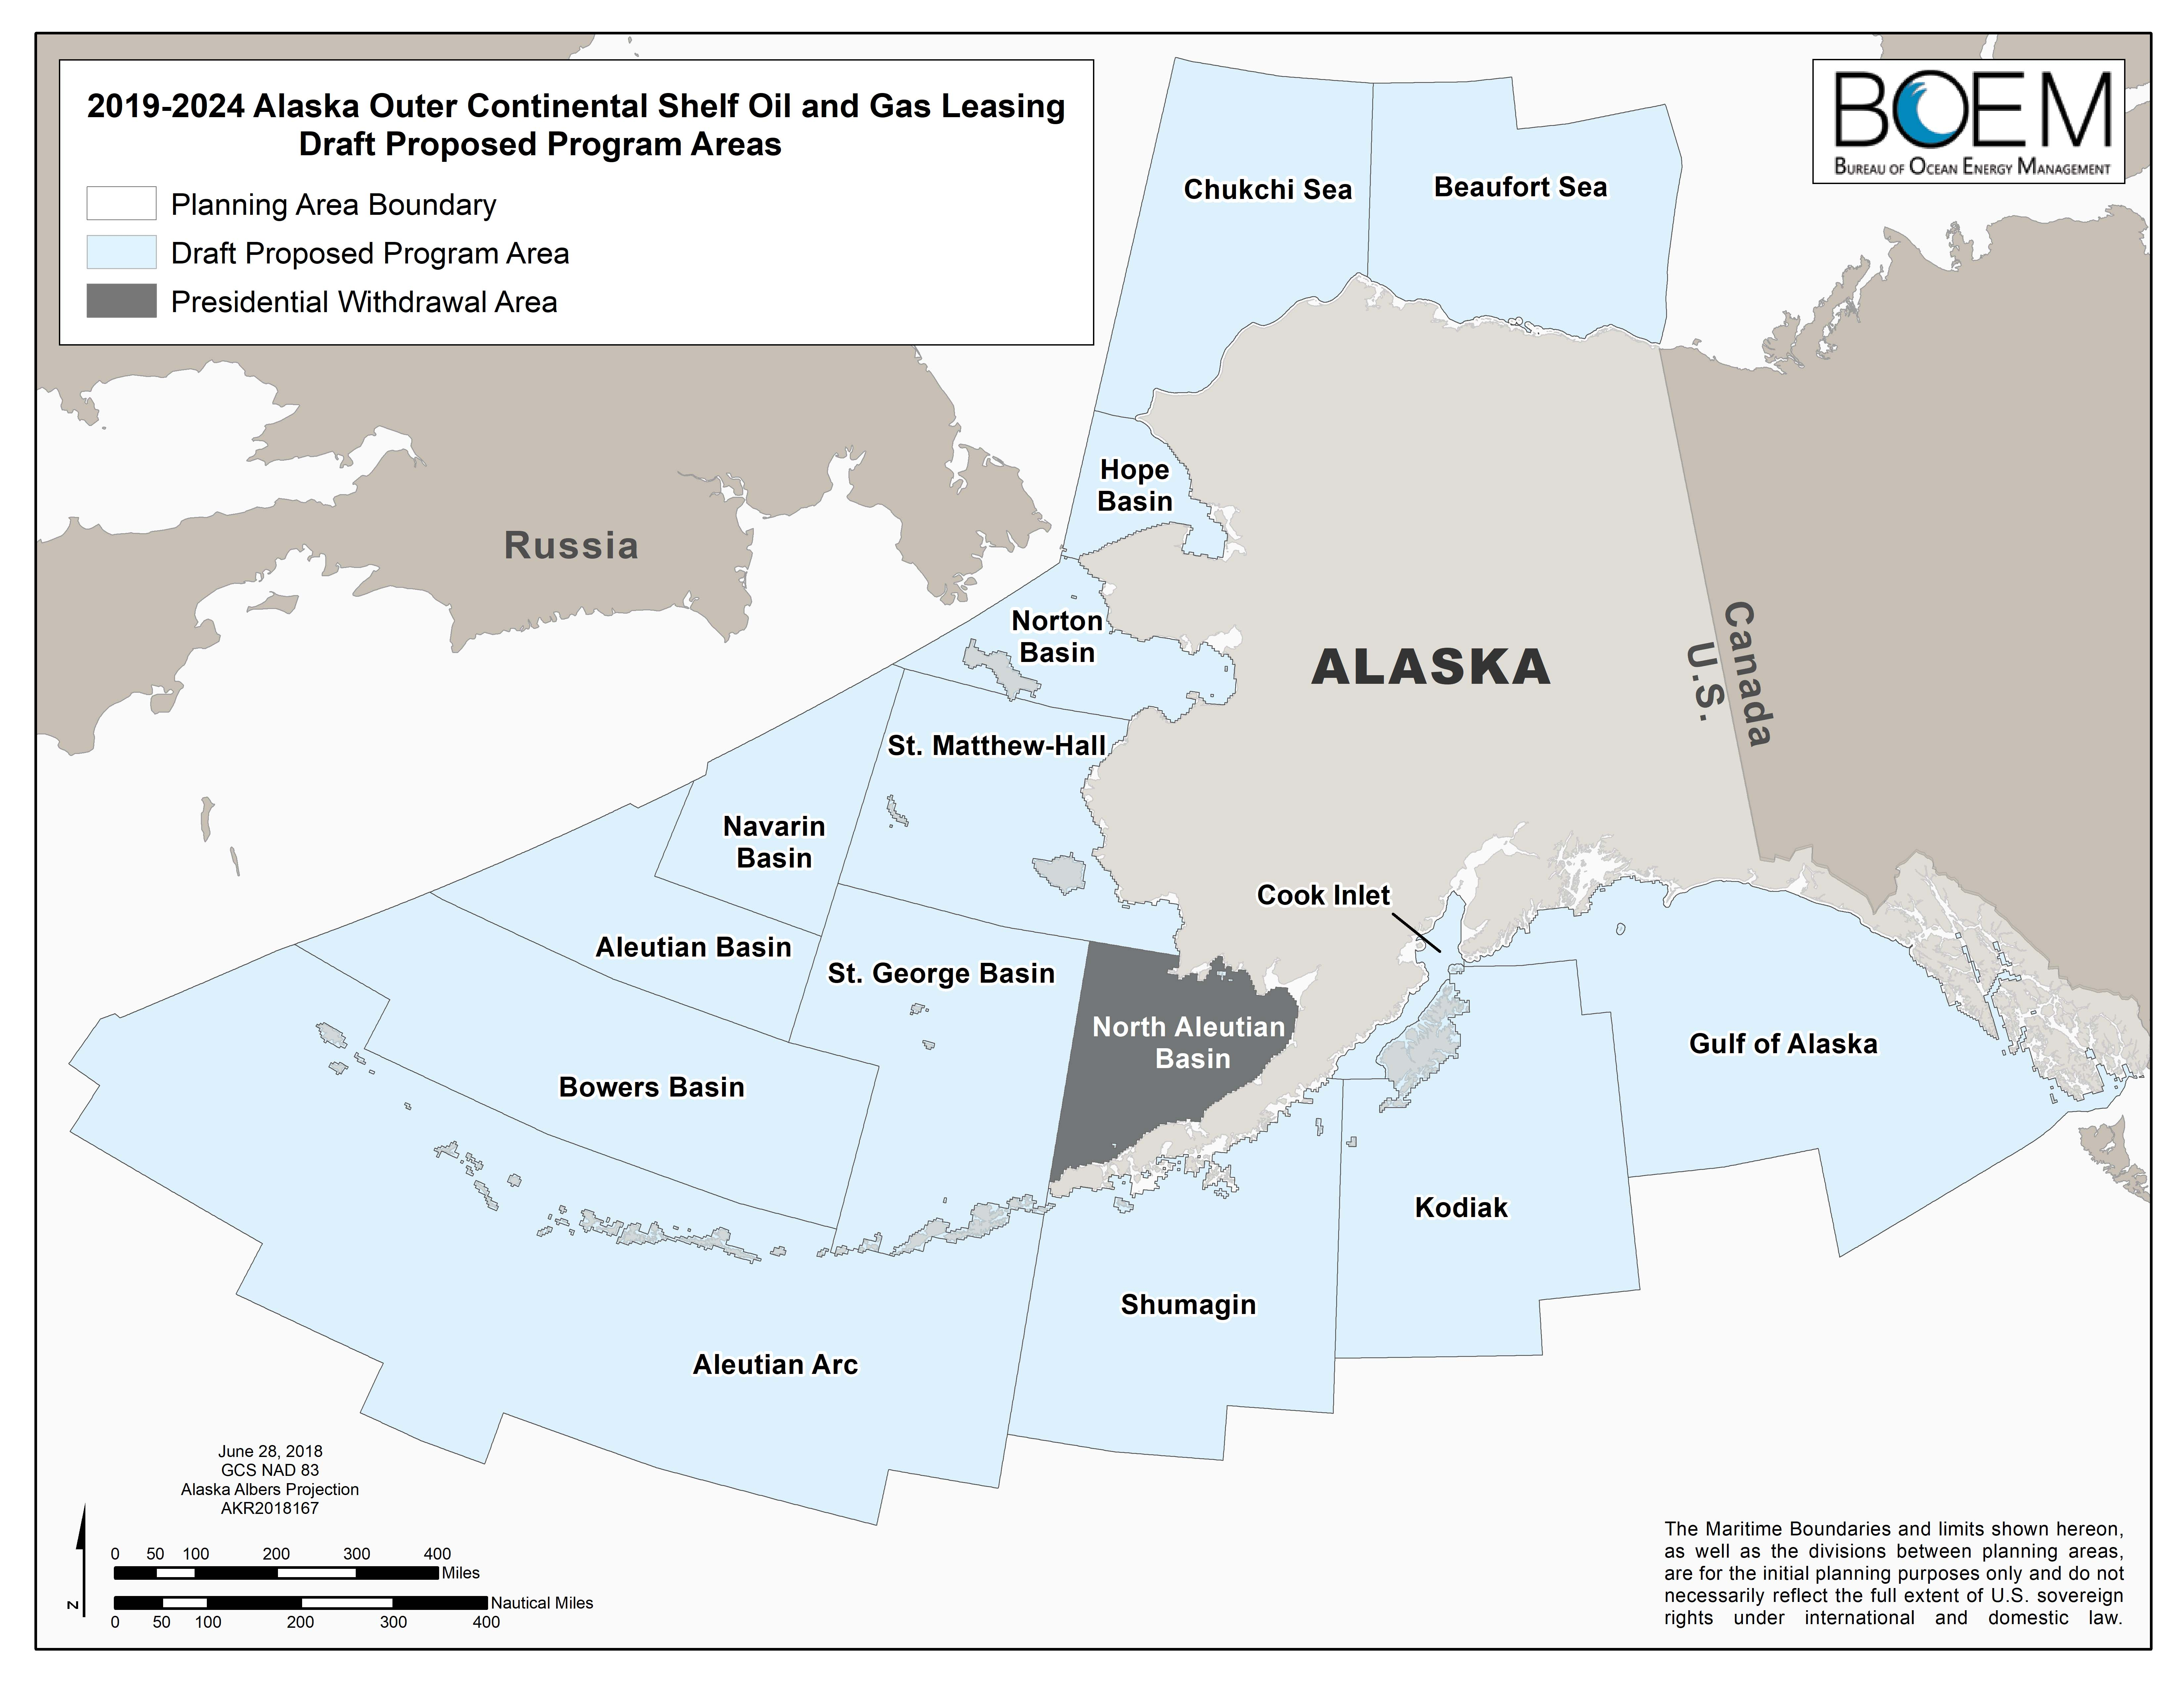 2019-2024 Alaska Outer Continental Shelf Oil and Gas Leasing Draft Proposed Program Areas